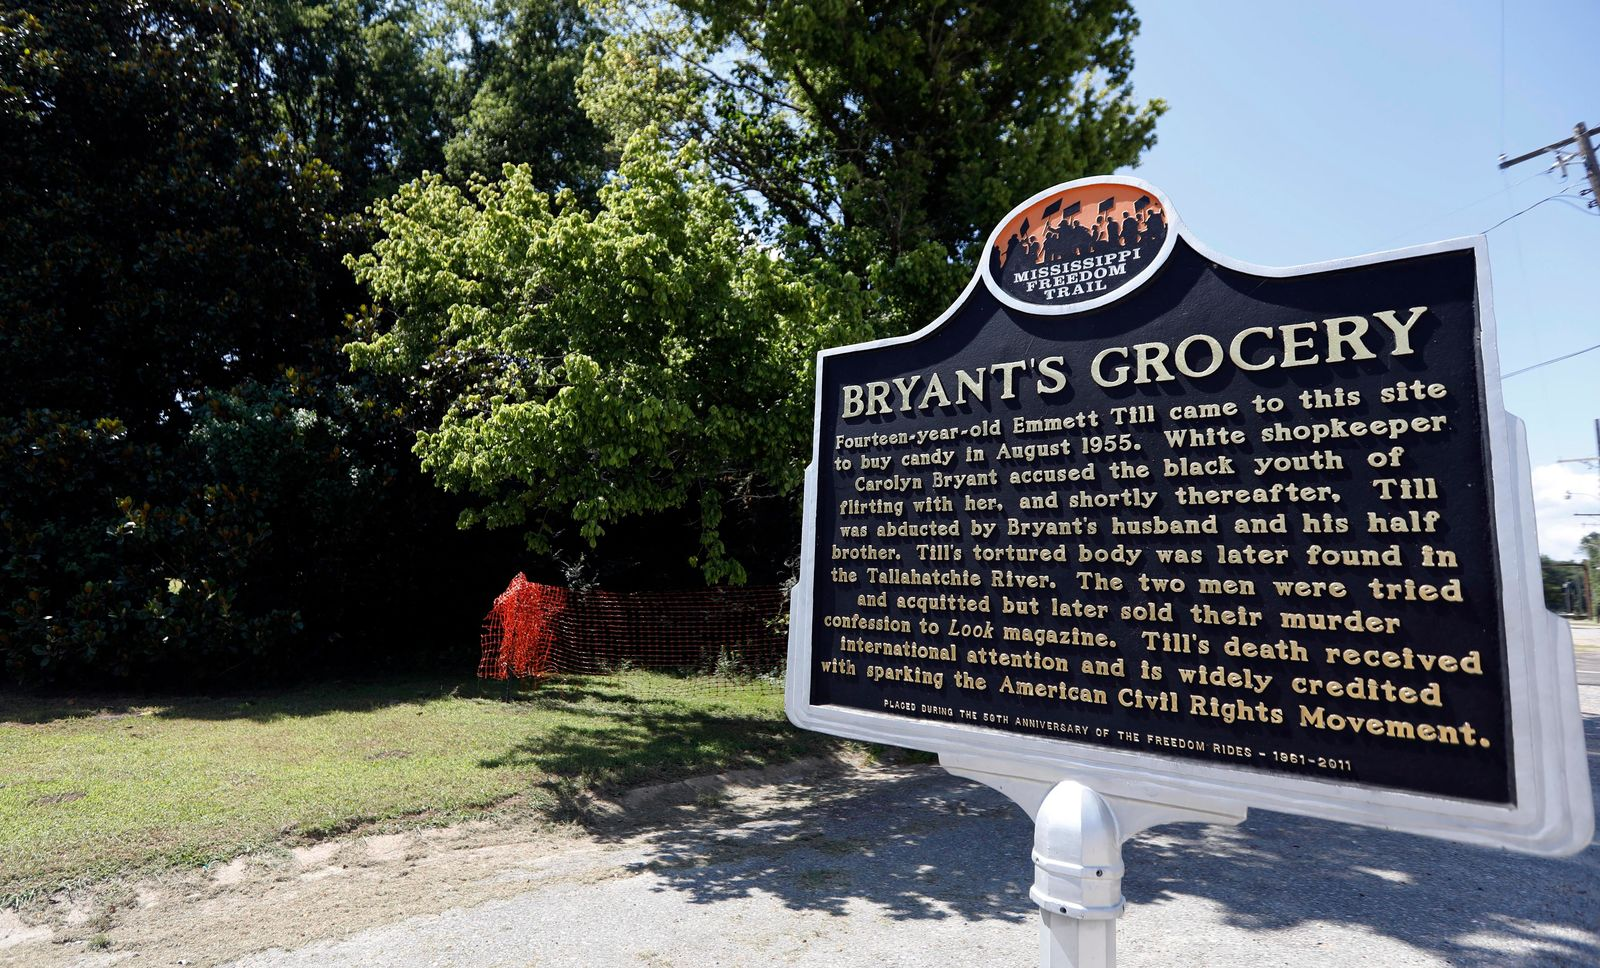 FILE -In this July 12, 2018 file photo, a Mississippi Freedom Trail marker recaps the significance of Bryant's Grocery and Meat Market, left, now in ruins, in Money, Miss., where in 1955, 14-year old Emmett Till, an African American male, allegedly whistled, grabbed and made sexual advances to Carolyn Bryant, a white woman, then wife of the store's owner. The federal government is still investigating the brutal slaying of Till, whose death helped spur the civil rights movement 60 years ago. A Justice Department report issued to Congress about civil rights cold case investigations lists Till's killing as being among the unit's active cases.  (AP Photo/Rogelio V. Solis, File)